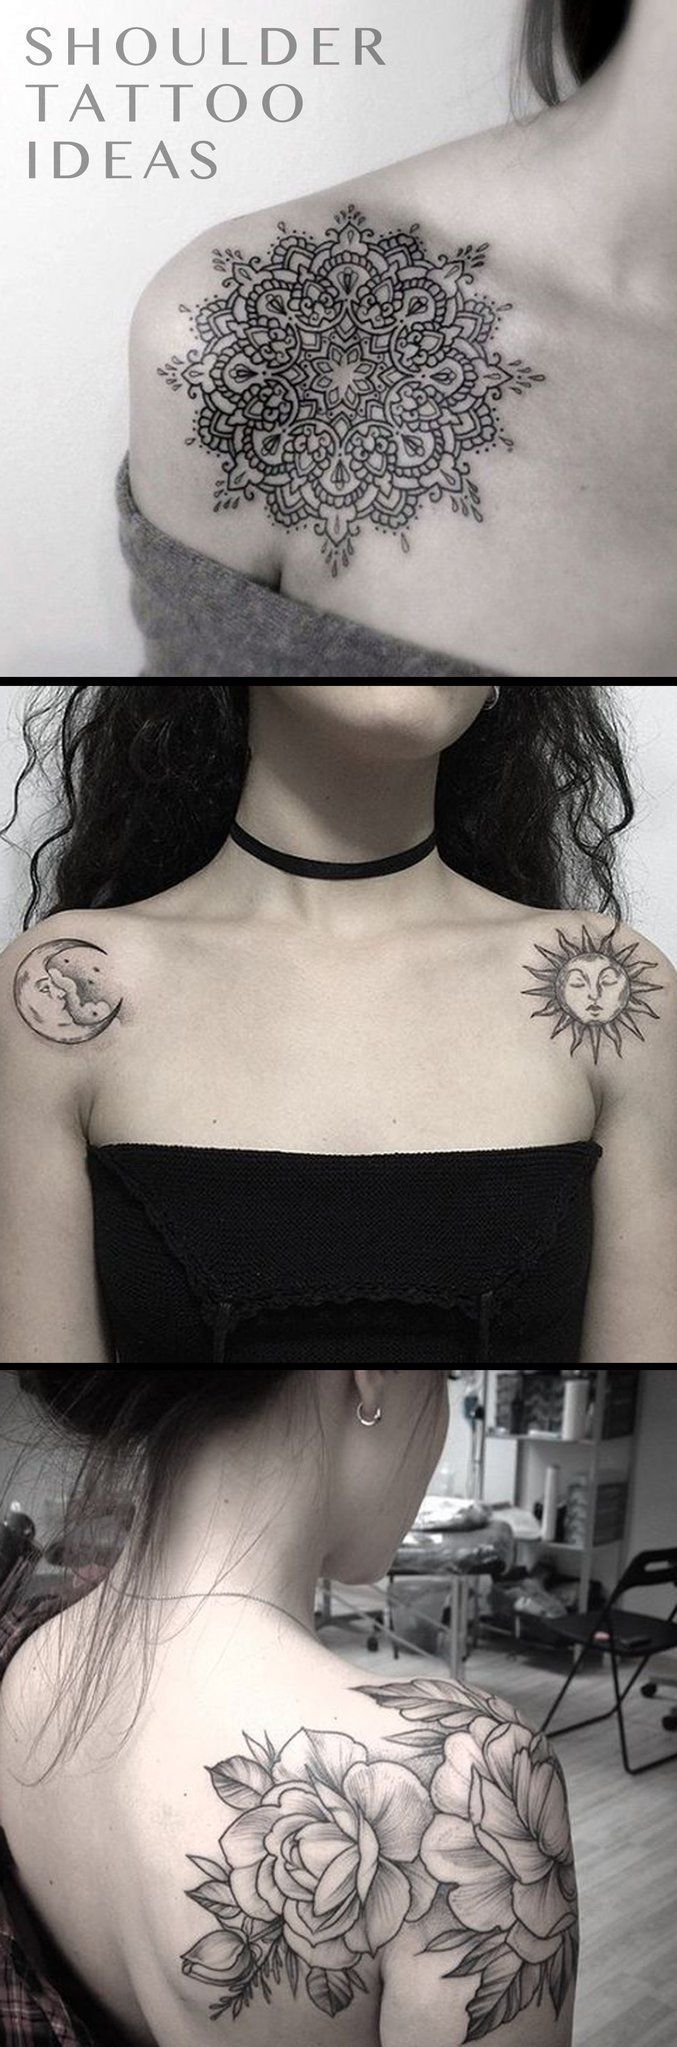 Popular Shoulder Tattoo Ideas for Woman - Black and White Geometric Mandala idées de tatouage with Meaning - Sun and Moon Ideas Del Tatuaje - Delicate Vintage Floral Flower Tattoo Ideen - www.MyBodiArt.com